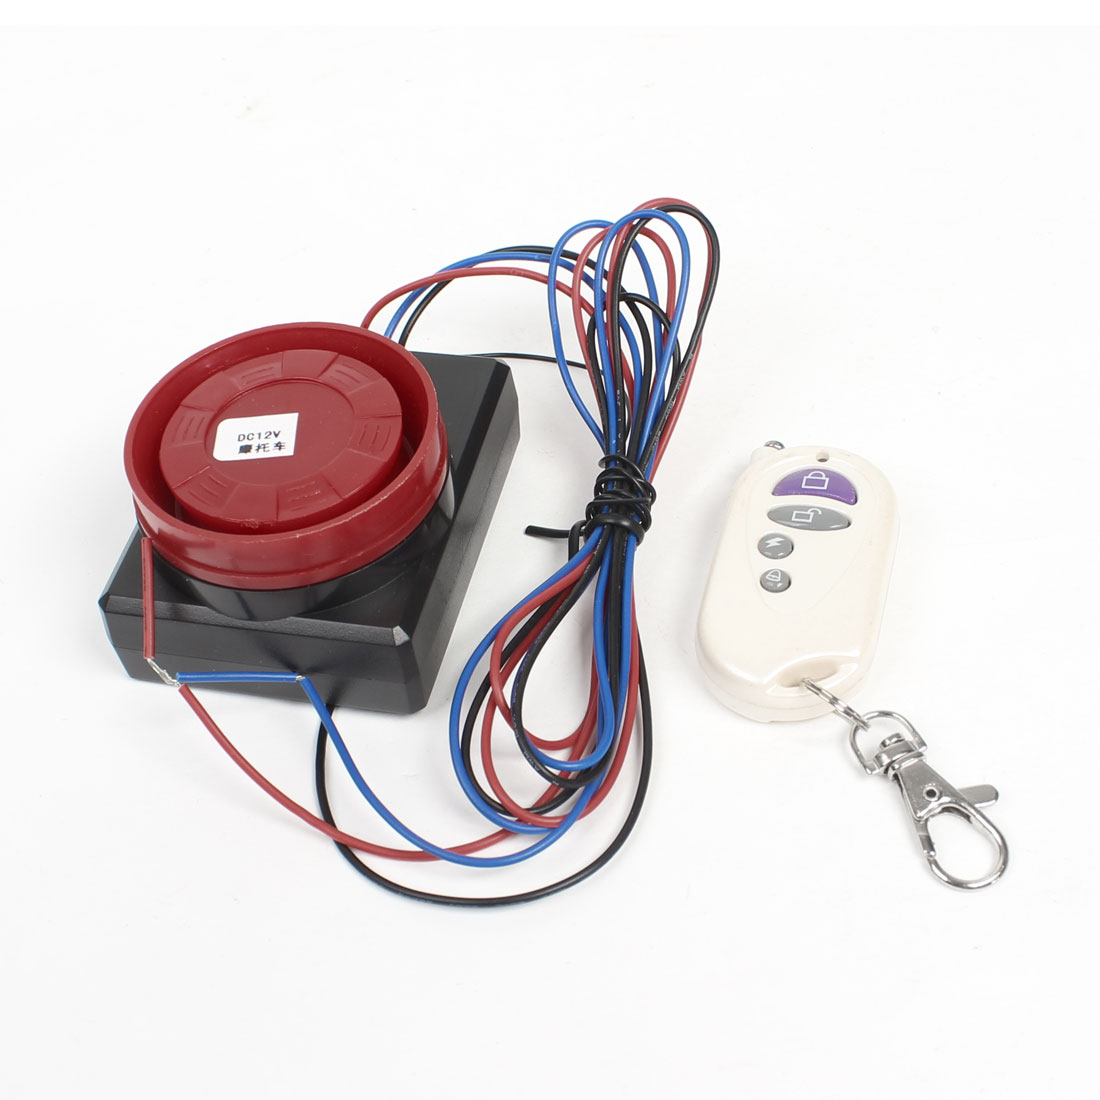 Plastic-Electric-Motorcycle-Pre-wired-Vibration-Sensor-w-Remote-Control